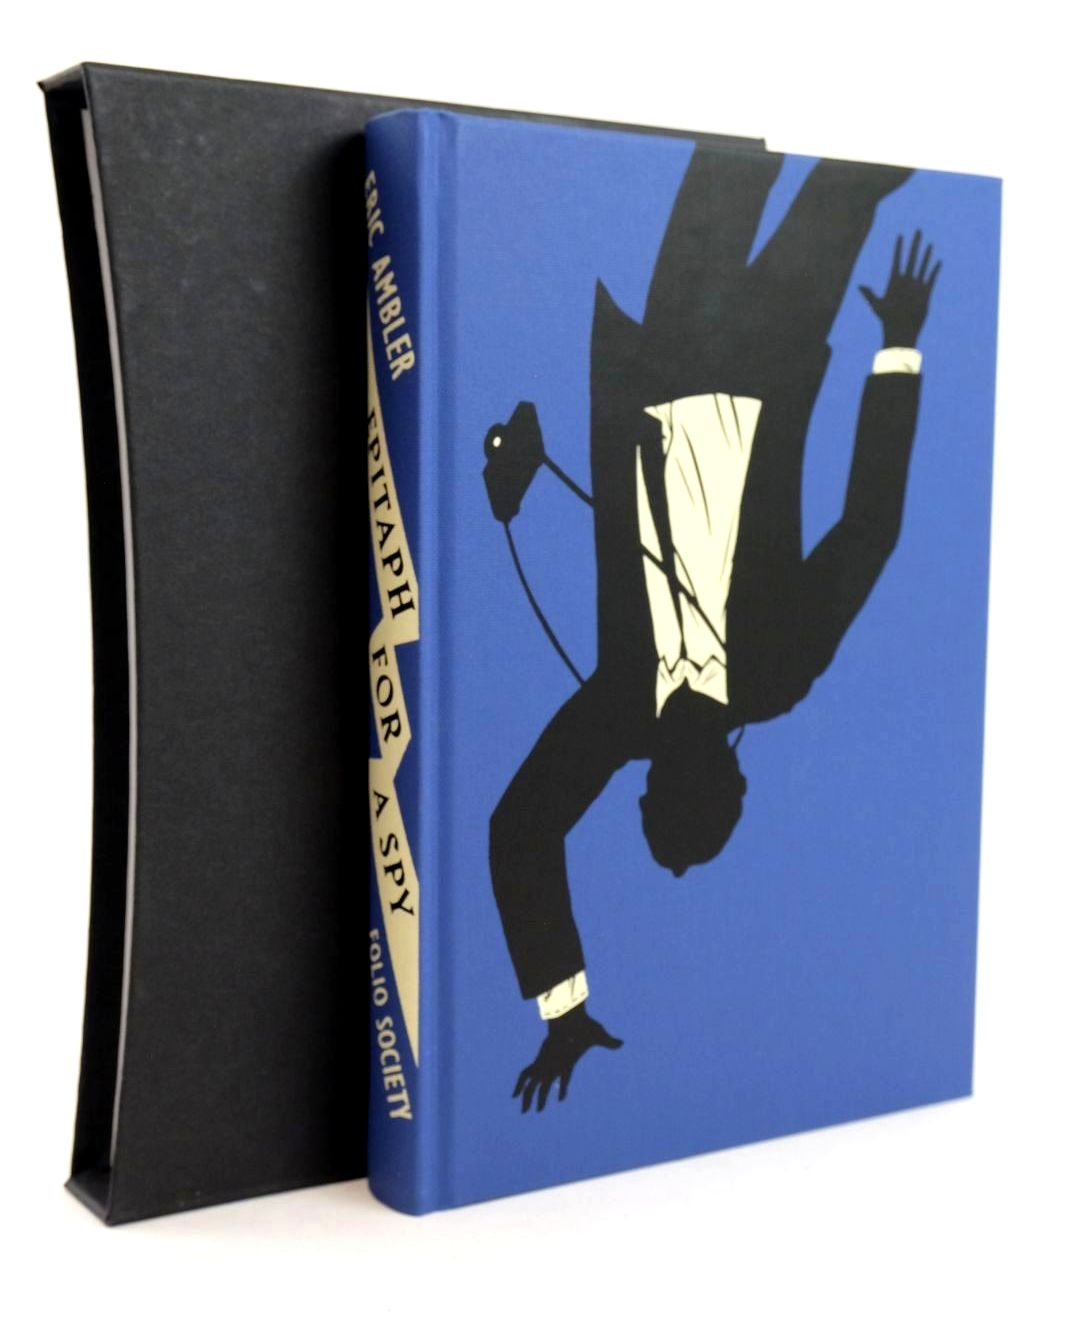 Photo of EPITAPH FOR A SPY written by Ambler, Eric illustrated by Blow, Paul published by Folio Society (STOCK CODE: 1318874)  for sale by Stella & Rose's Books